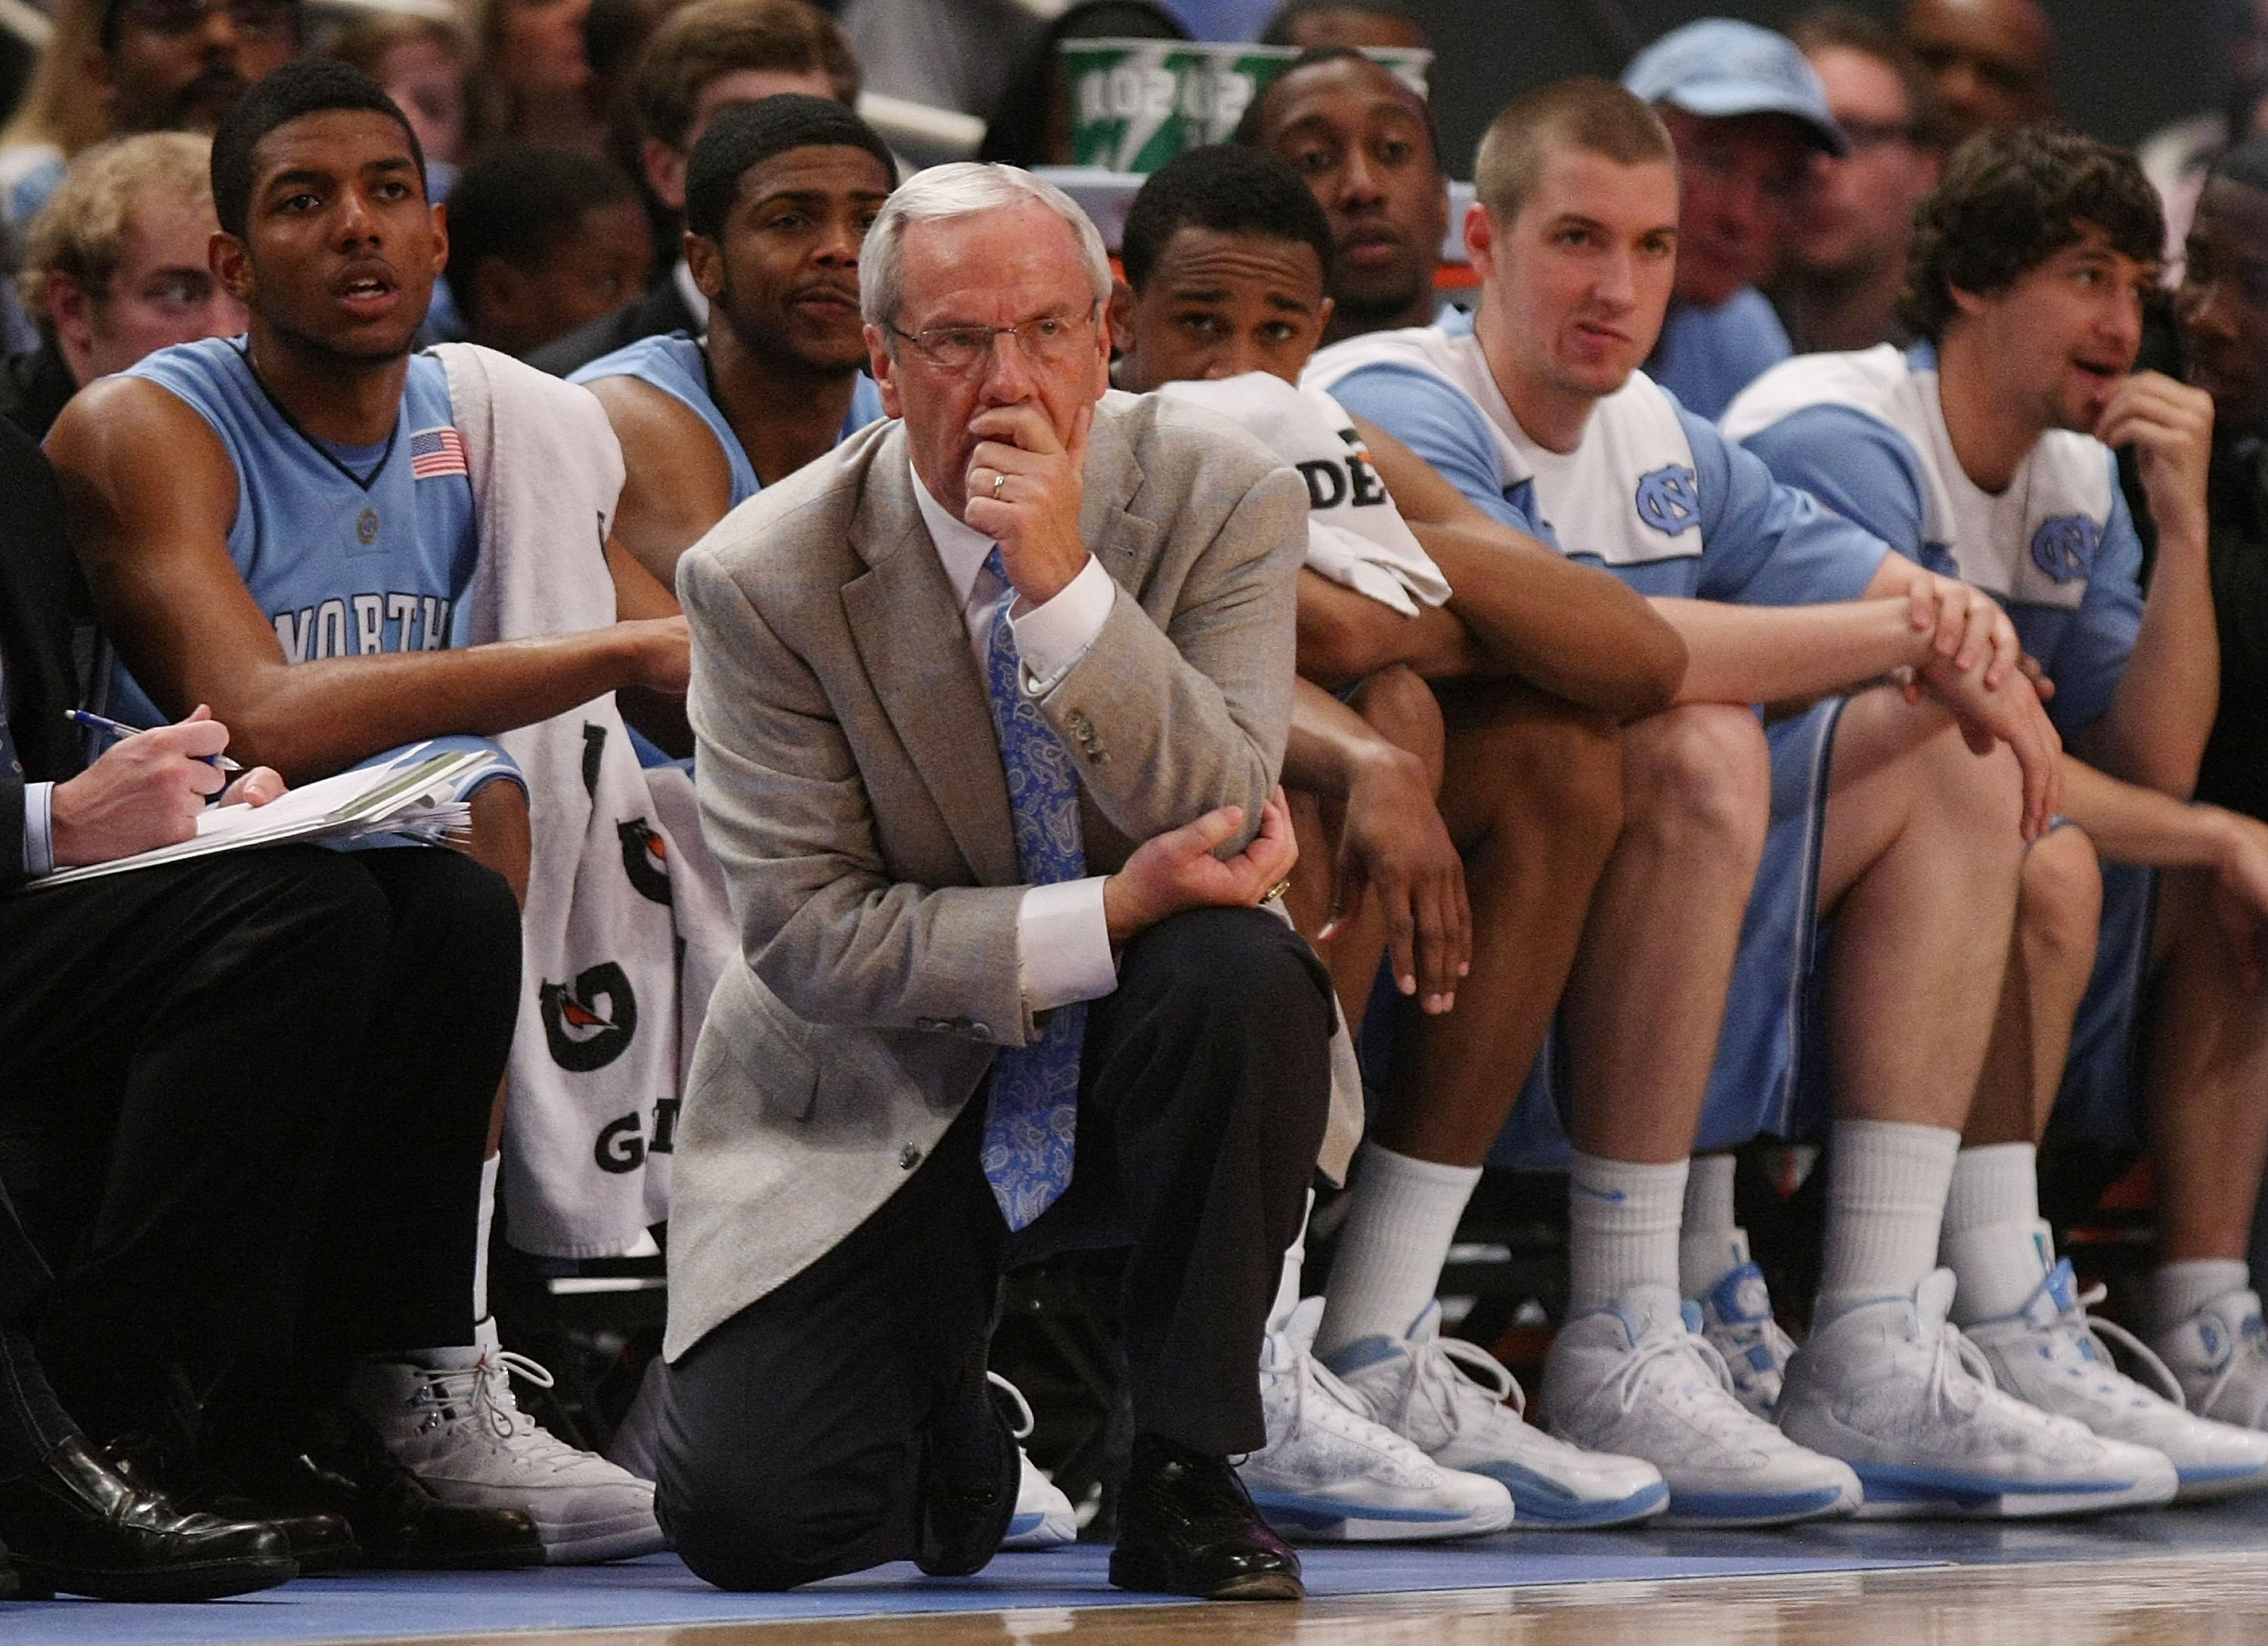 NEW YORK - APRIL 01: Head coach of the North Carolina Tar Heels, Roy Williams watches on against the Dayton Flyers during the 2010 NIT Championship Game at Madison Square Garden on April 1, 2010 in New York, New York.  (Photo by Nick Laham/Getty Images)